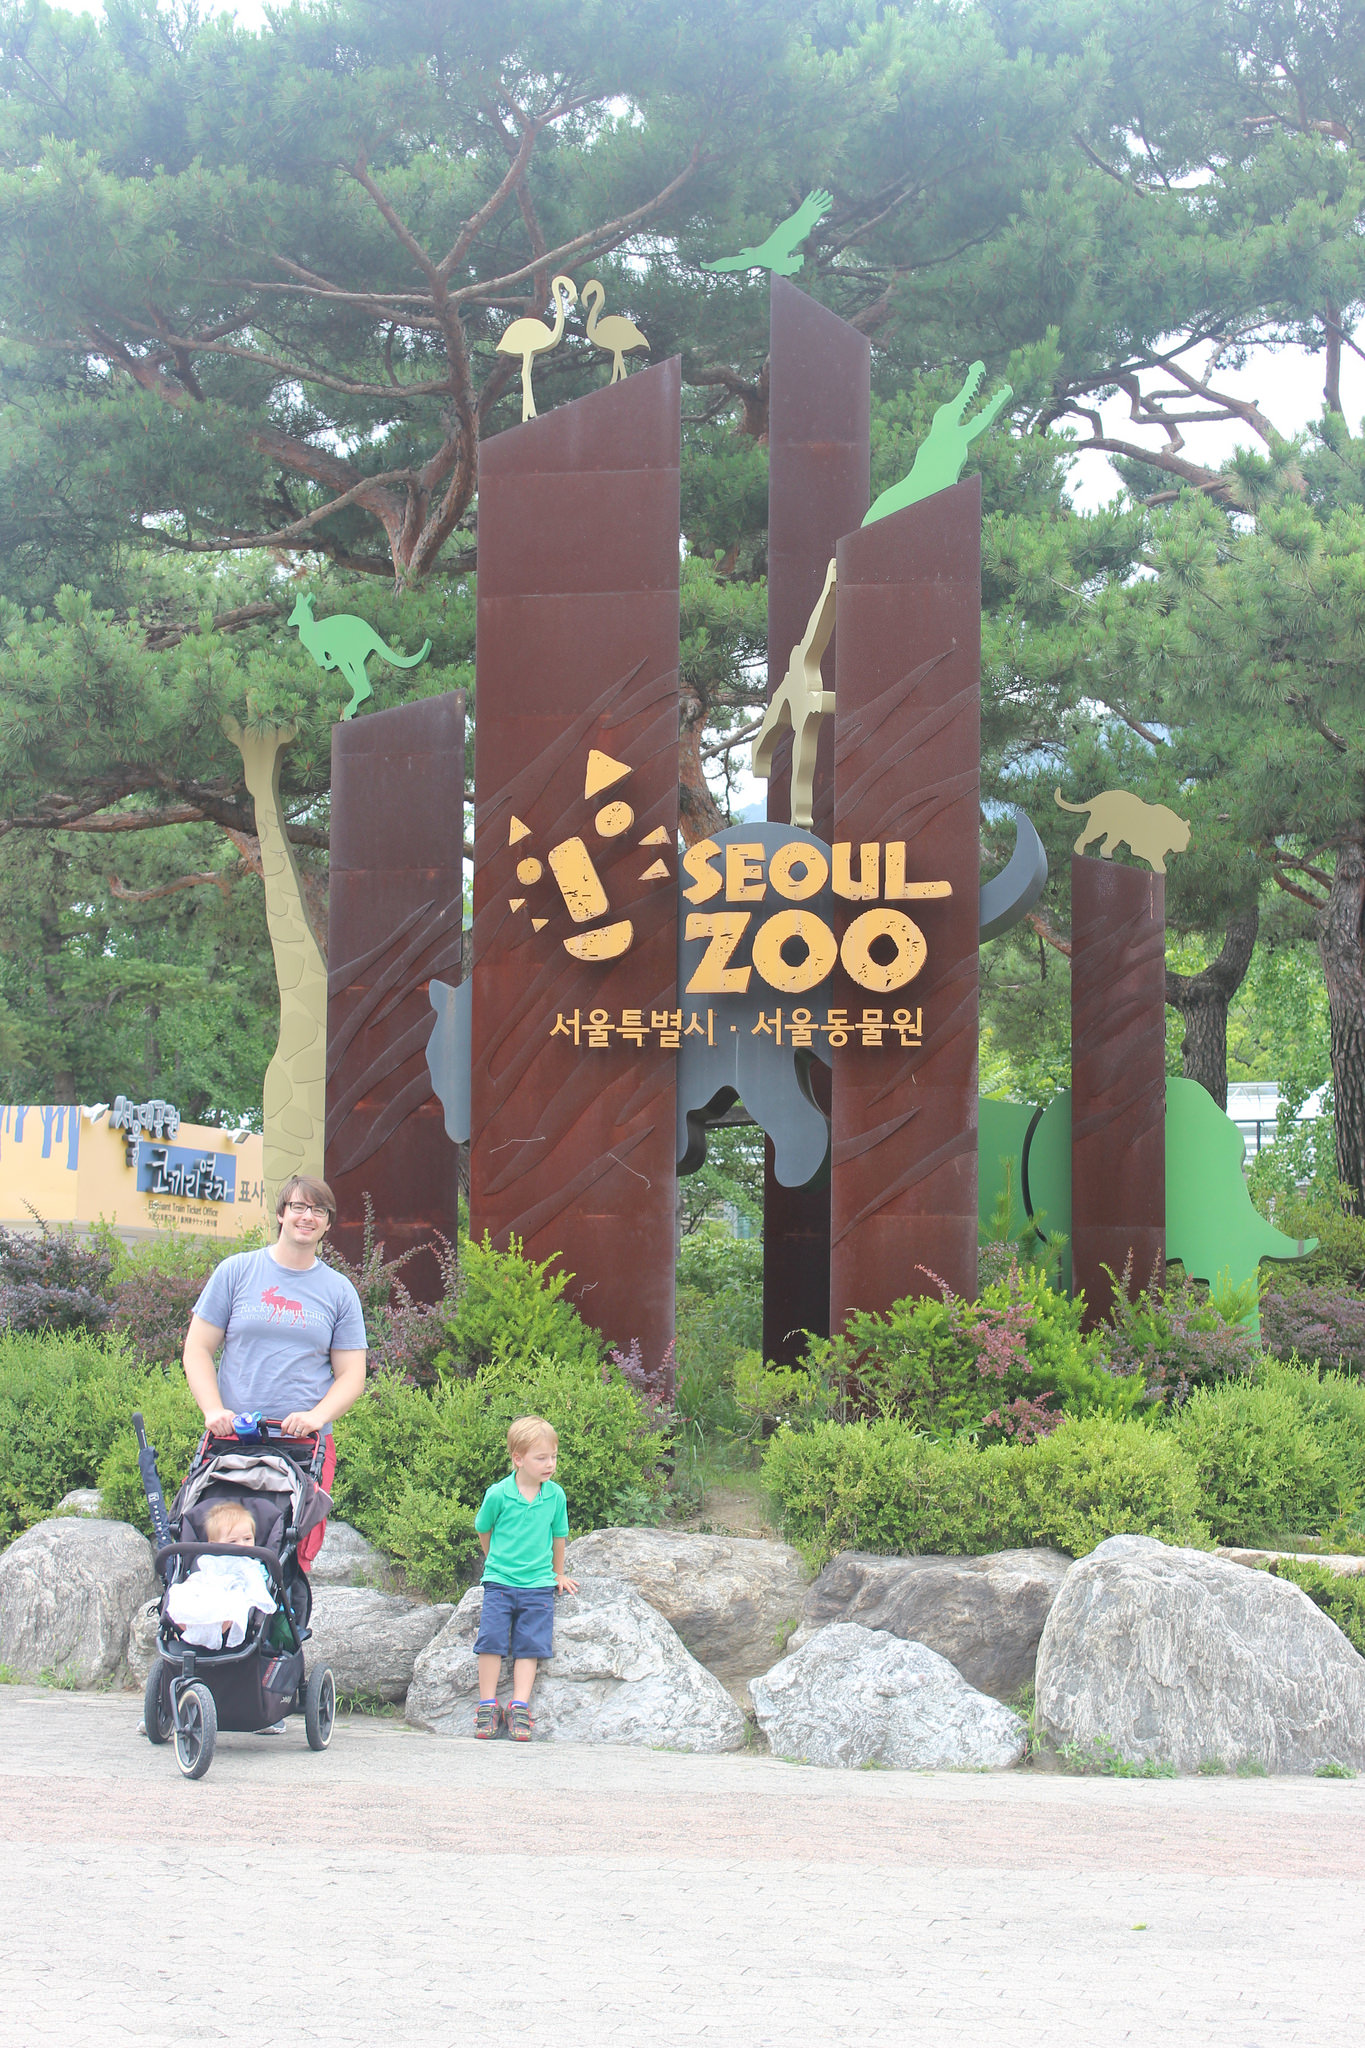 Seoul Zoo Seoul Grand Park, Seoul Grand Park- Zoo – The Wandering Browns